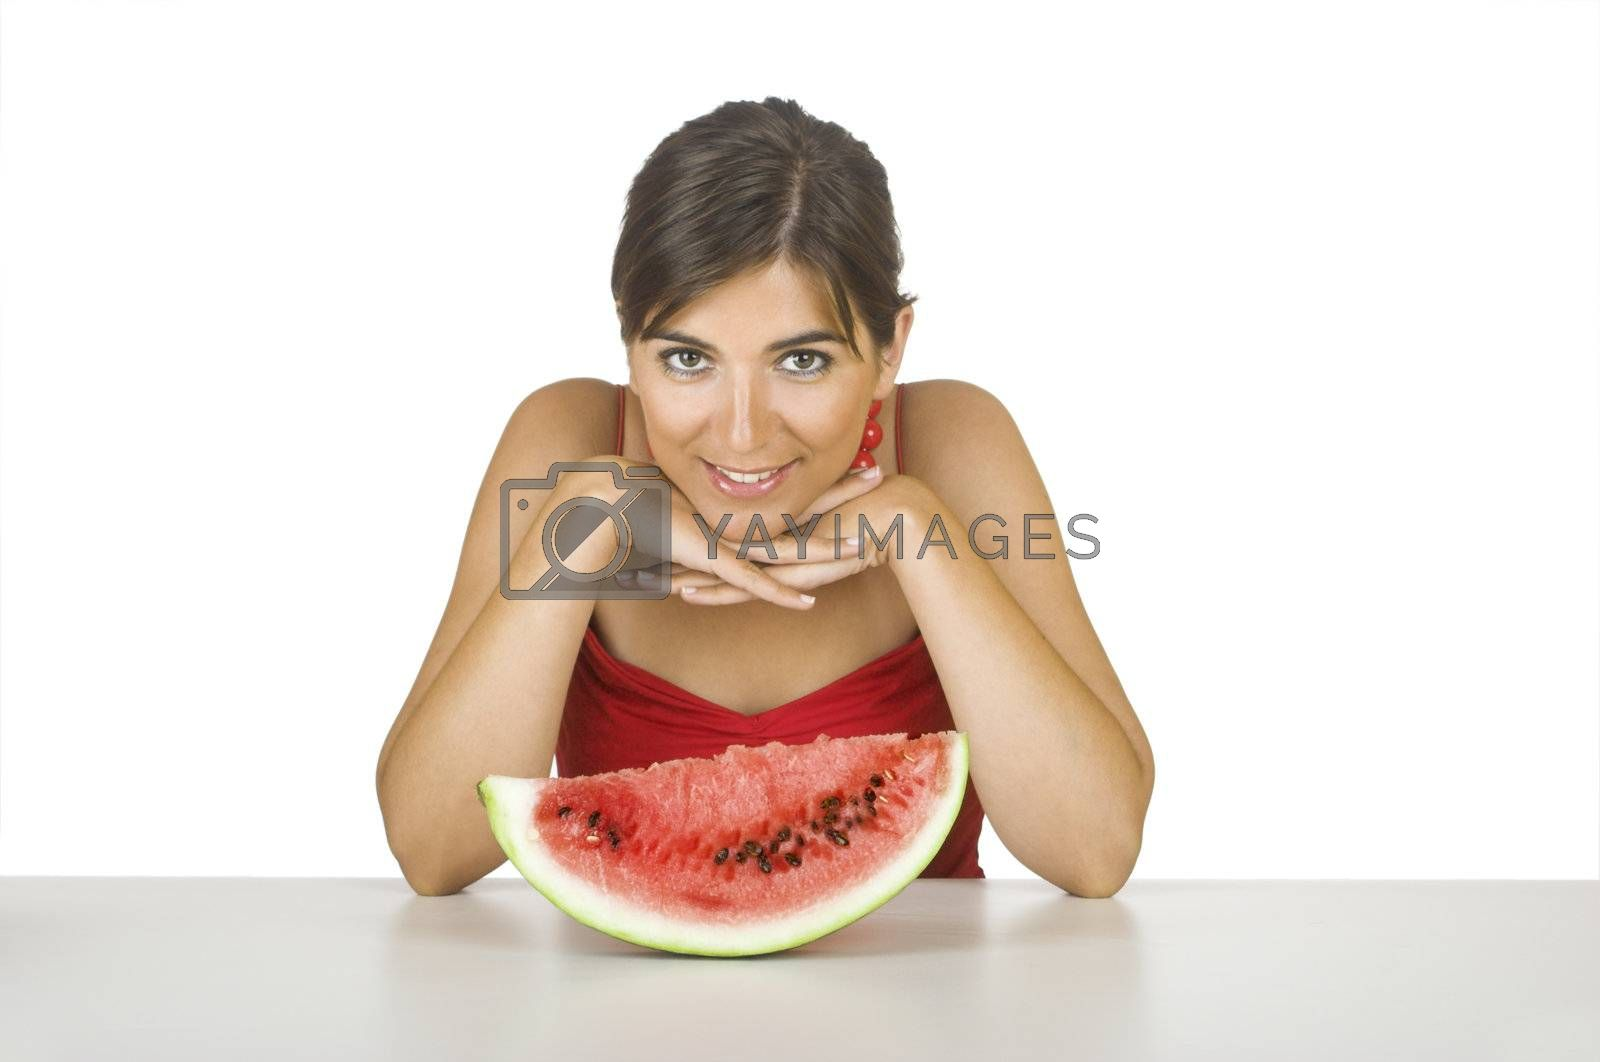 Beautiful young woman in the kitchen with a watemelon slice in front of her